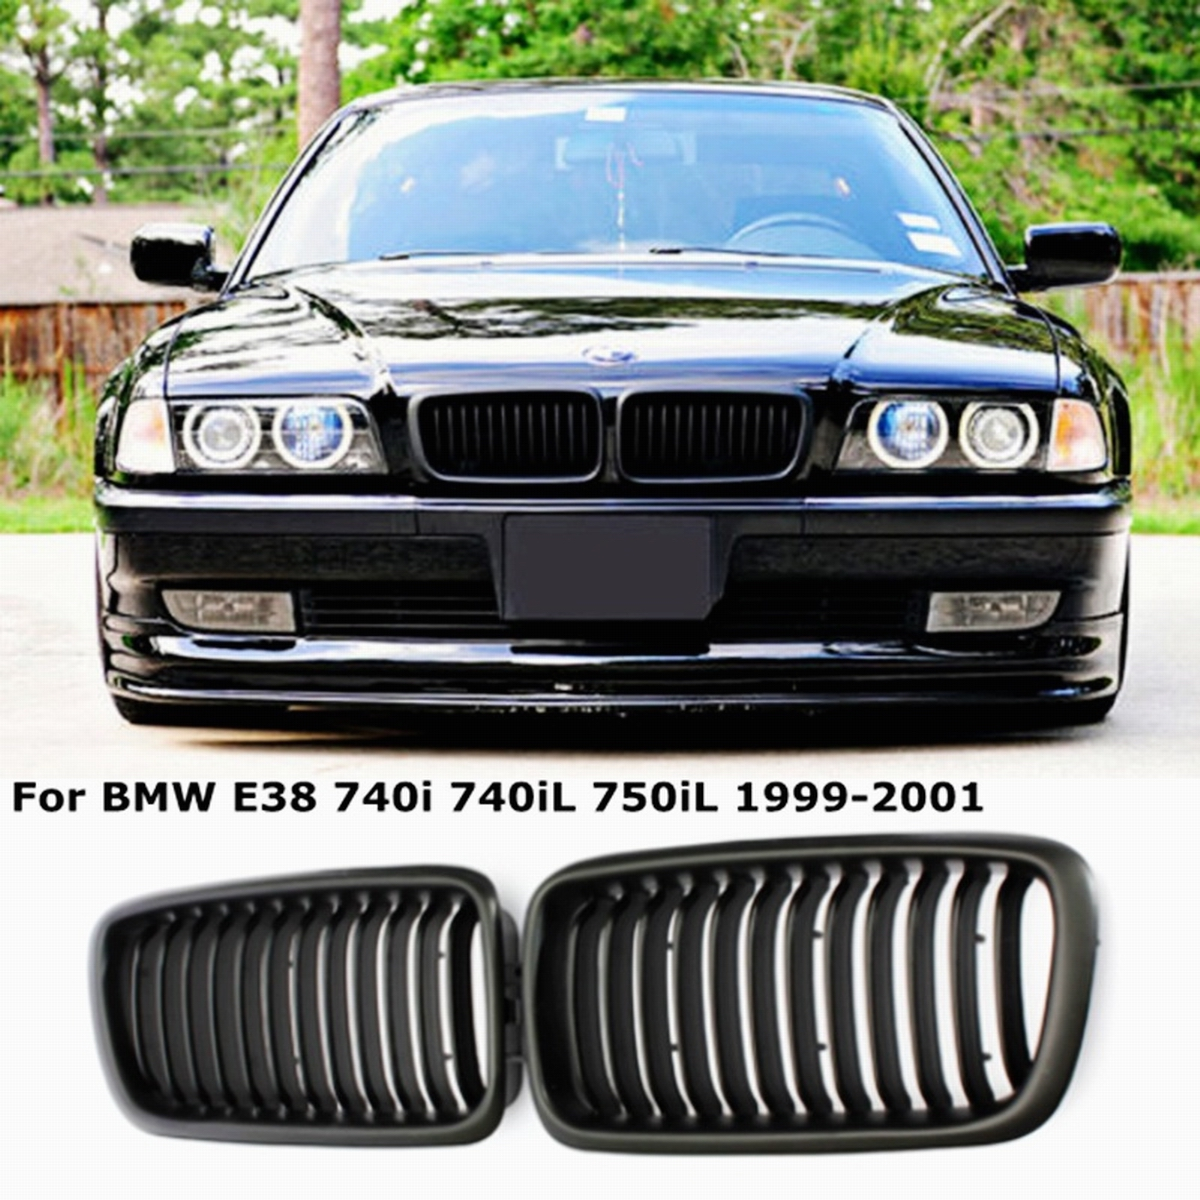 Chrome Front Kidney Grille Compatible with 1995-2001 BMW E38 740i 740iL 750iL Sedan 4 Door